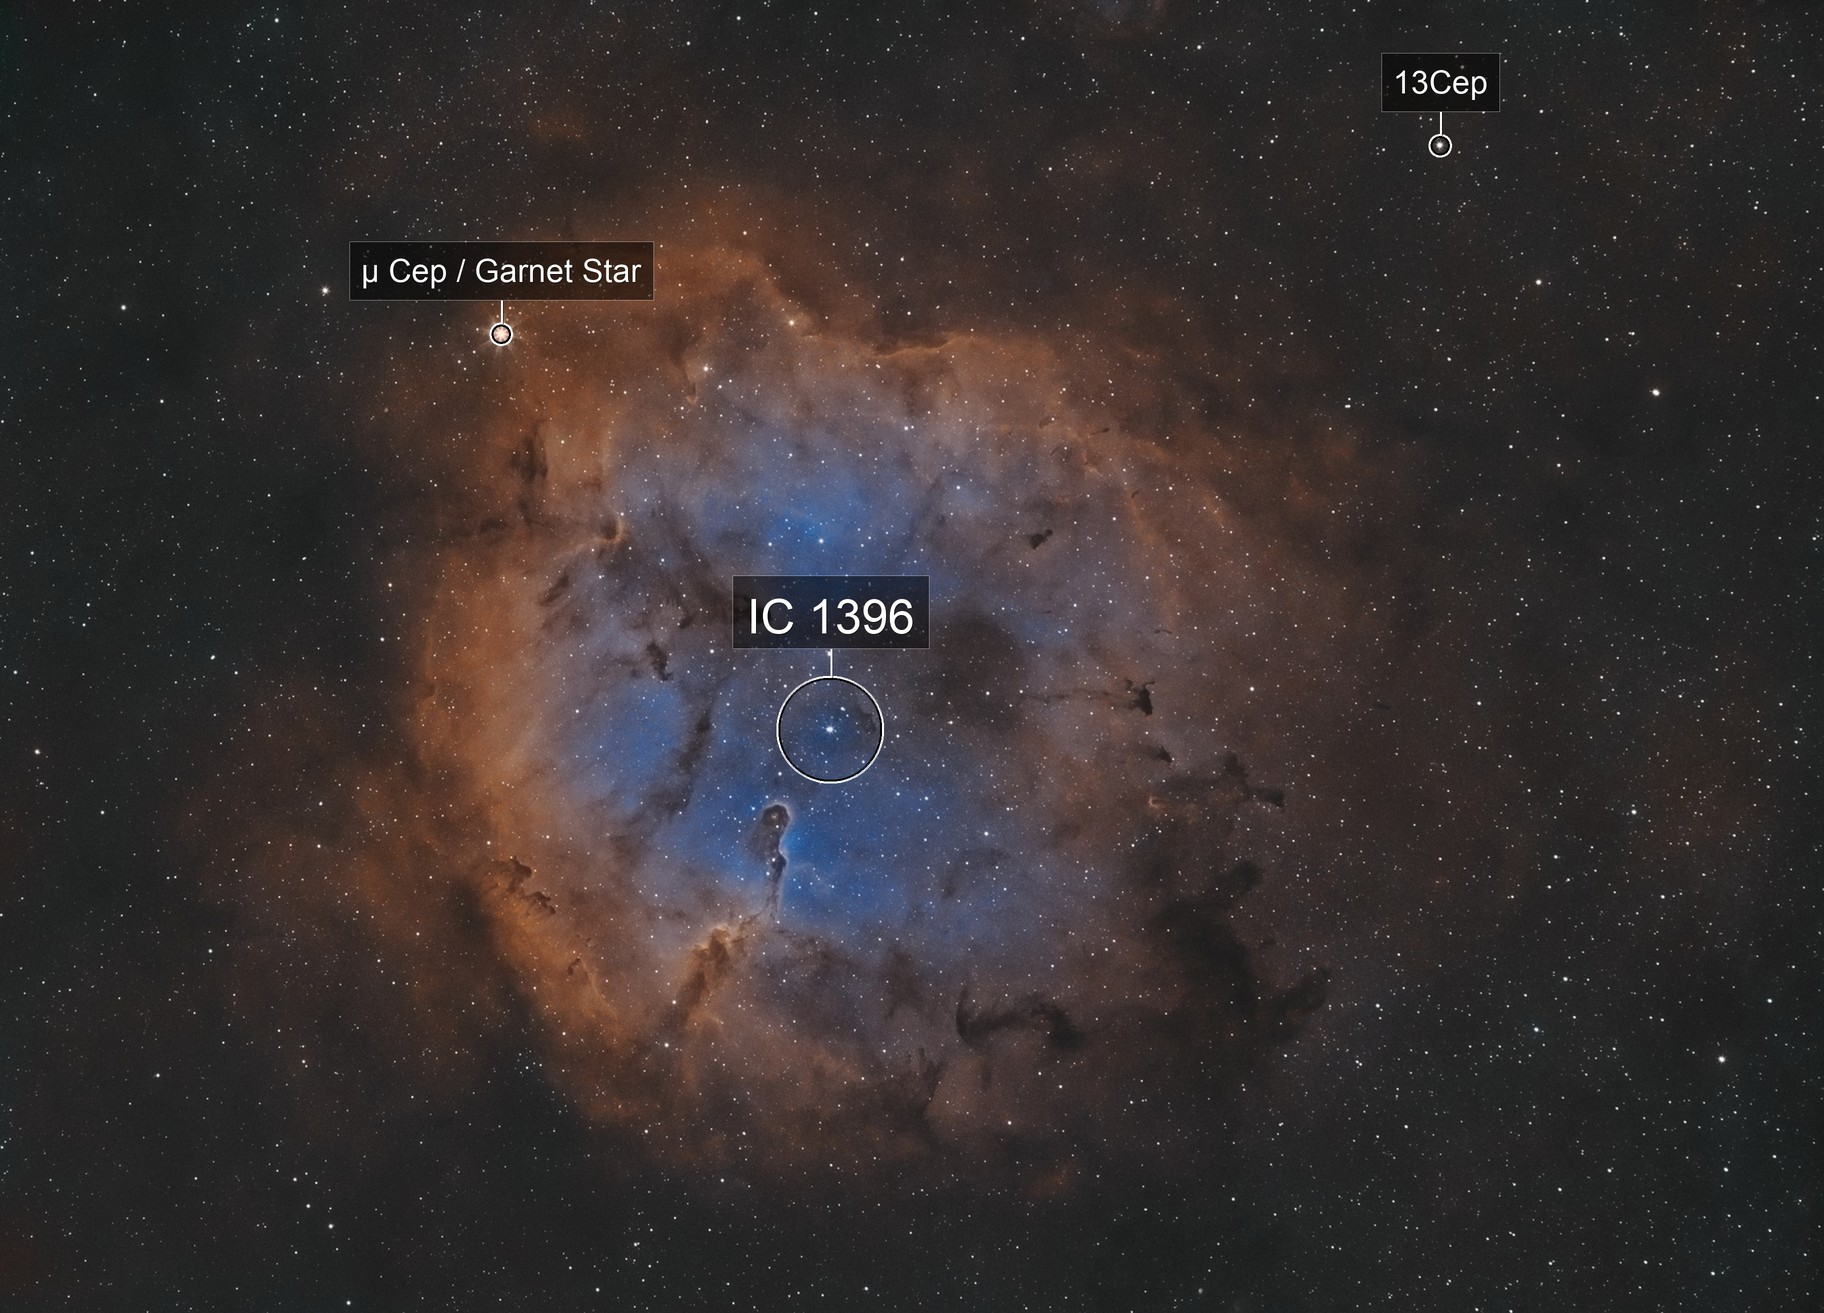 IC 1396 - The Elephant in the City